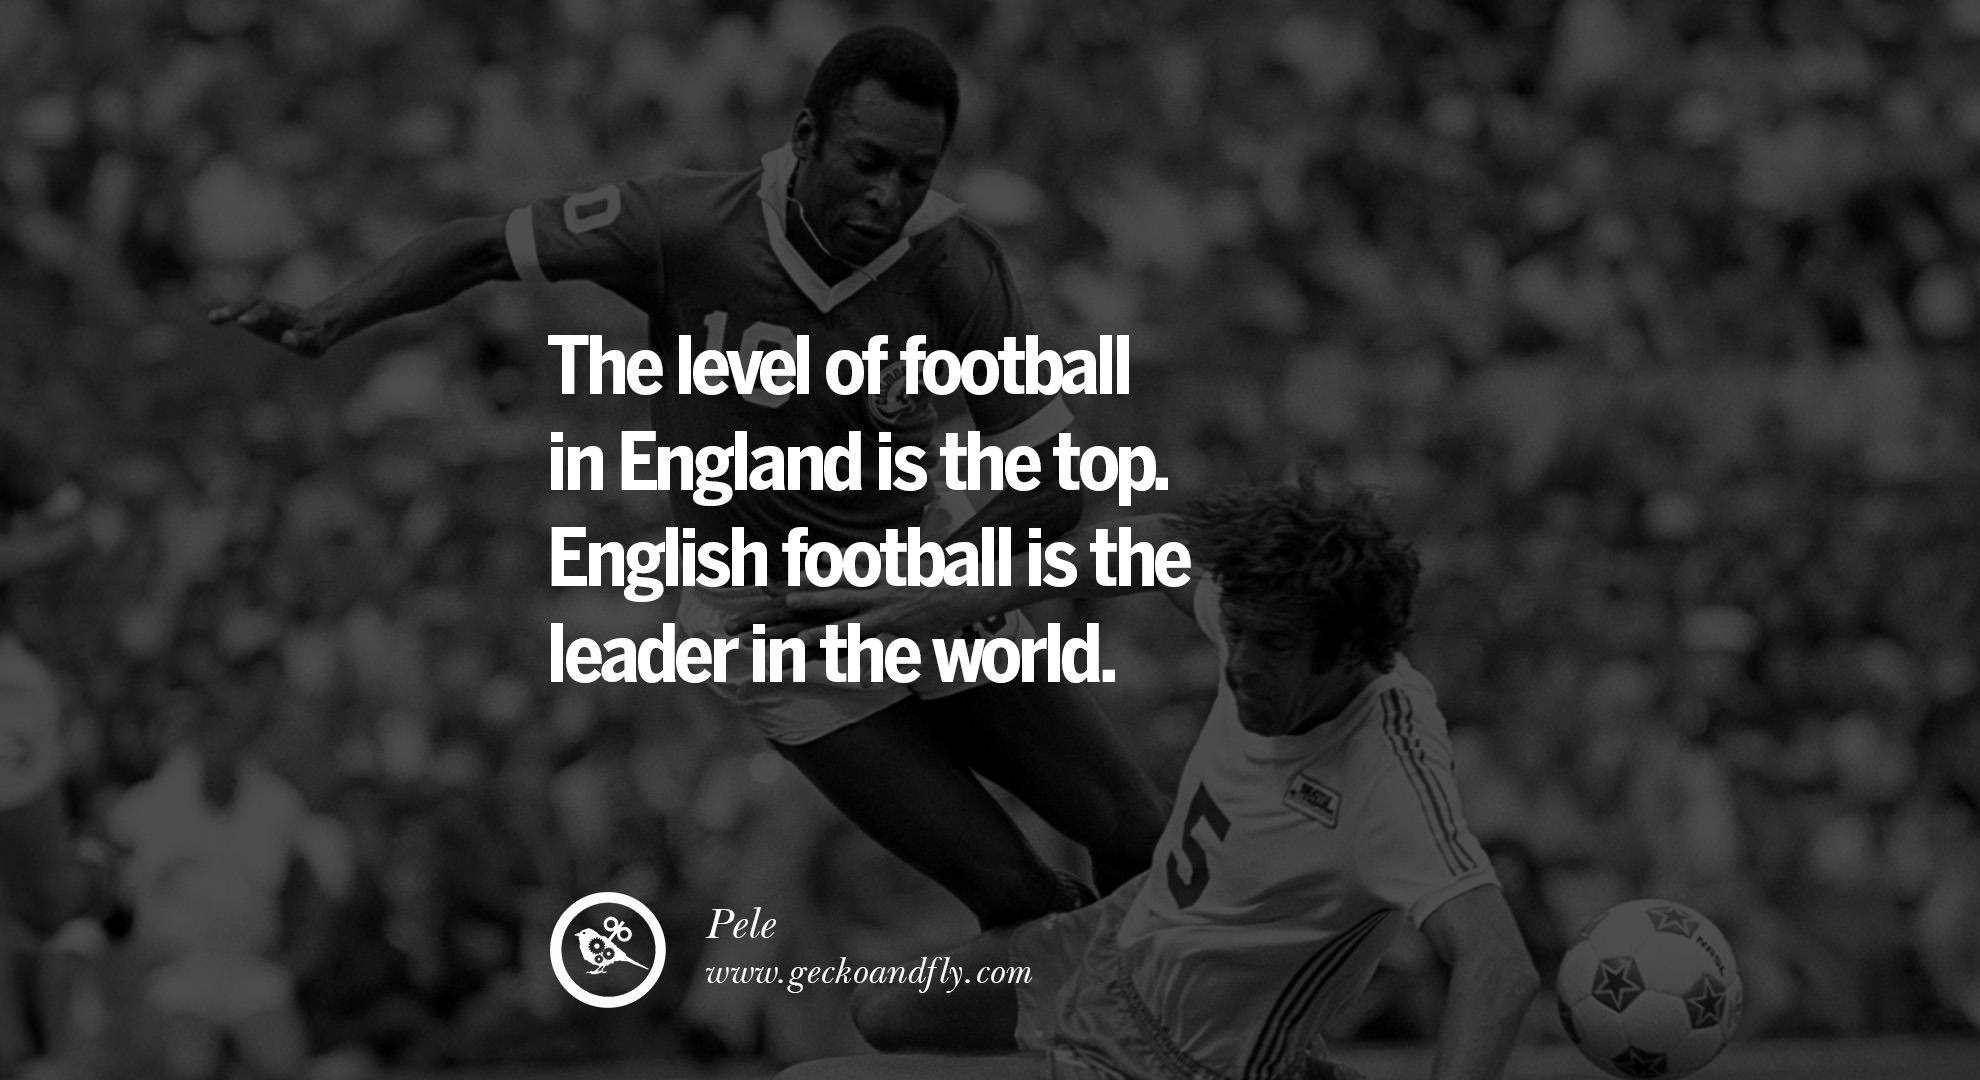 Top Quotes 12 Inspiring Quotes From Pele The Greatest Football Legend